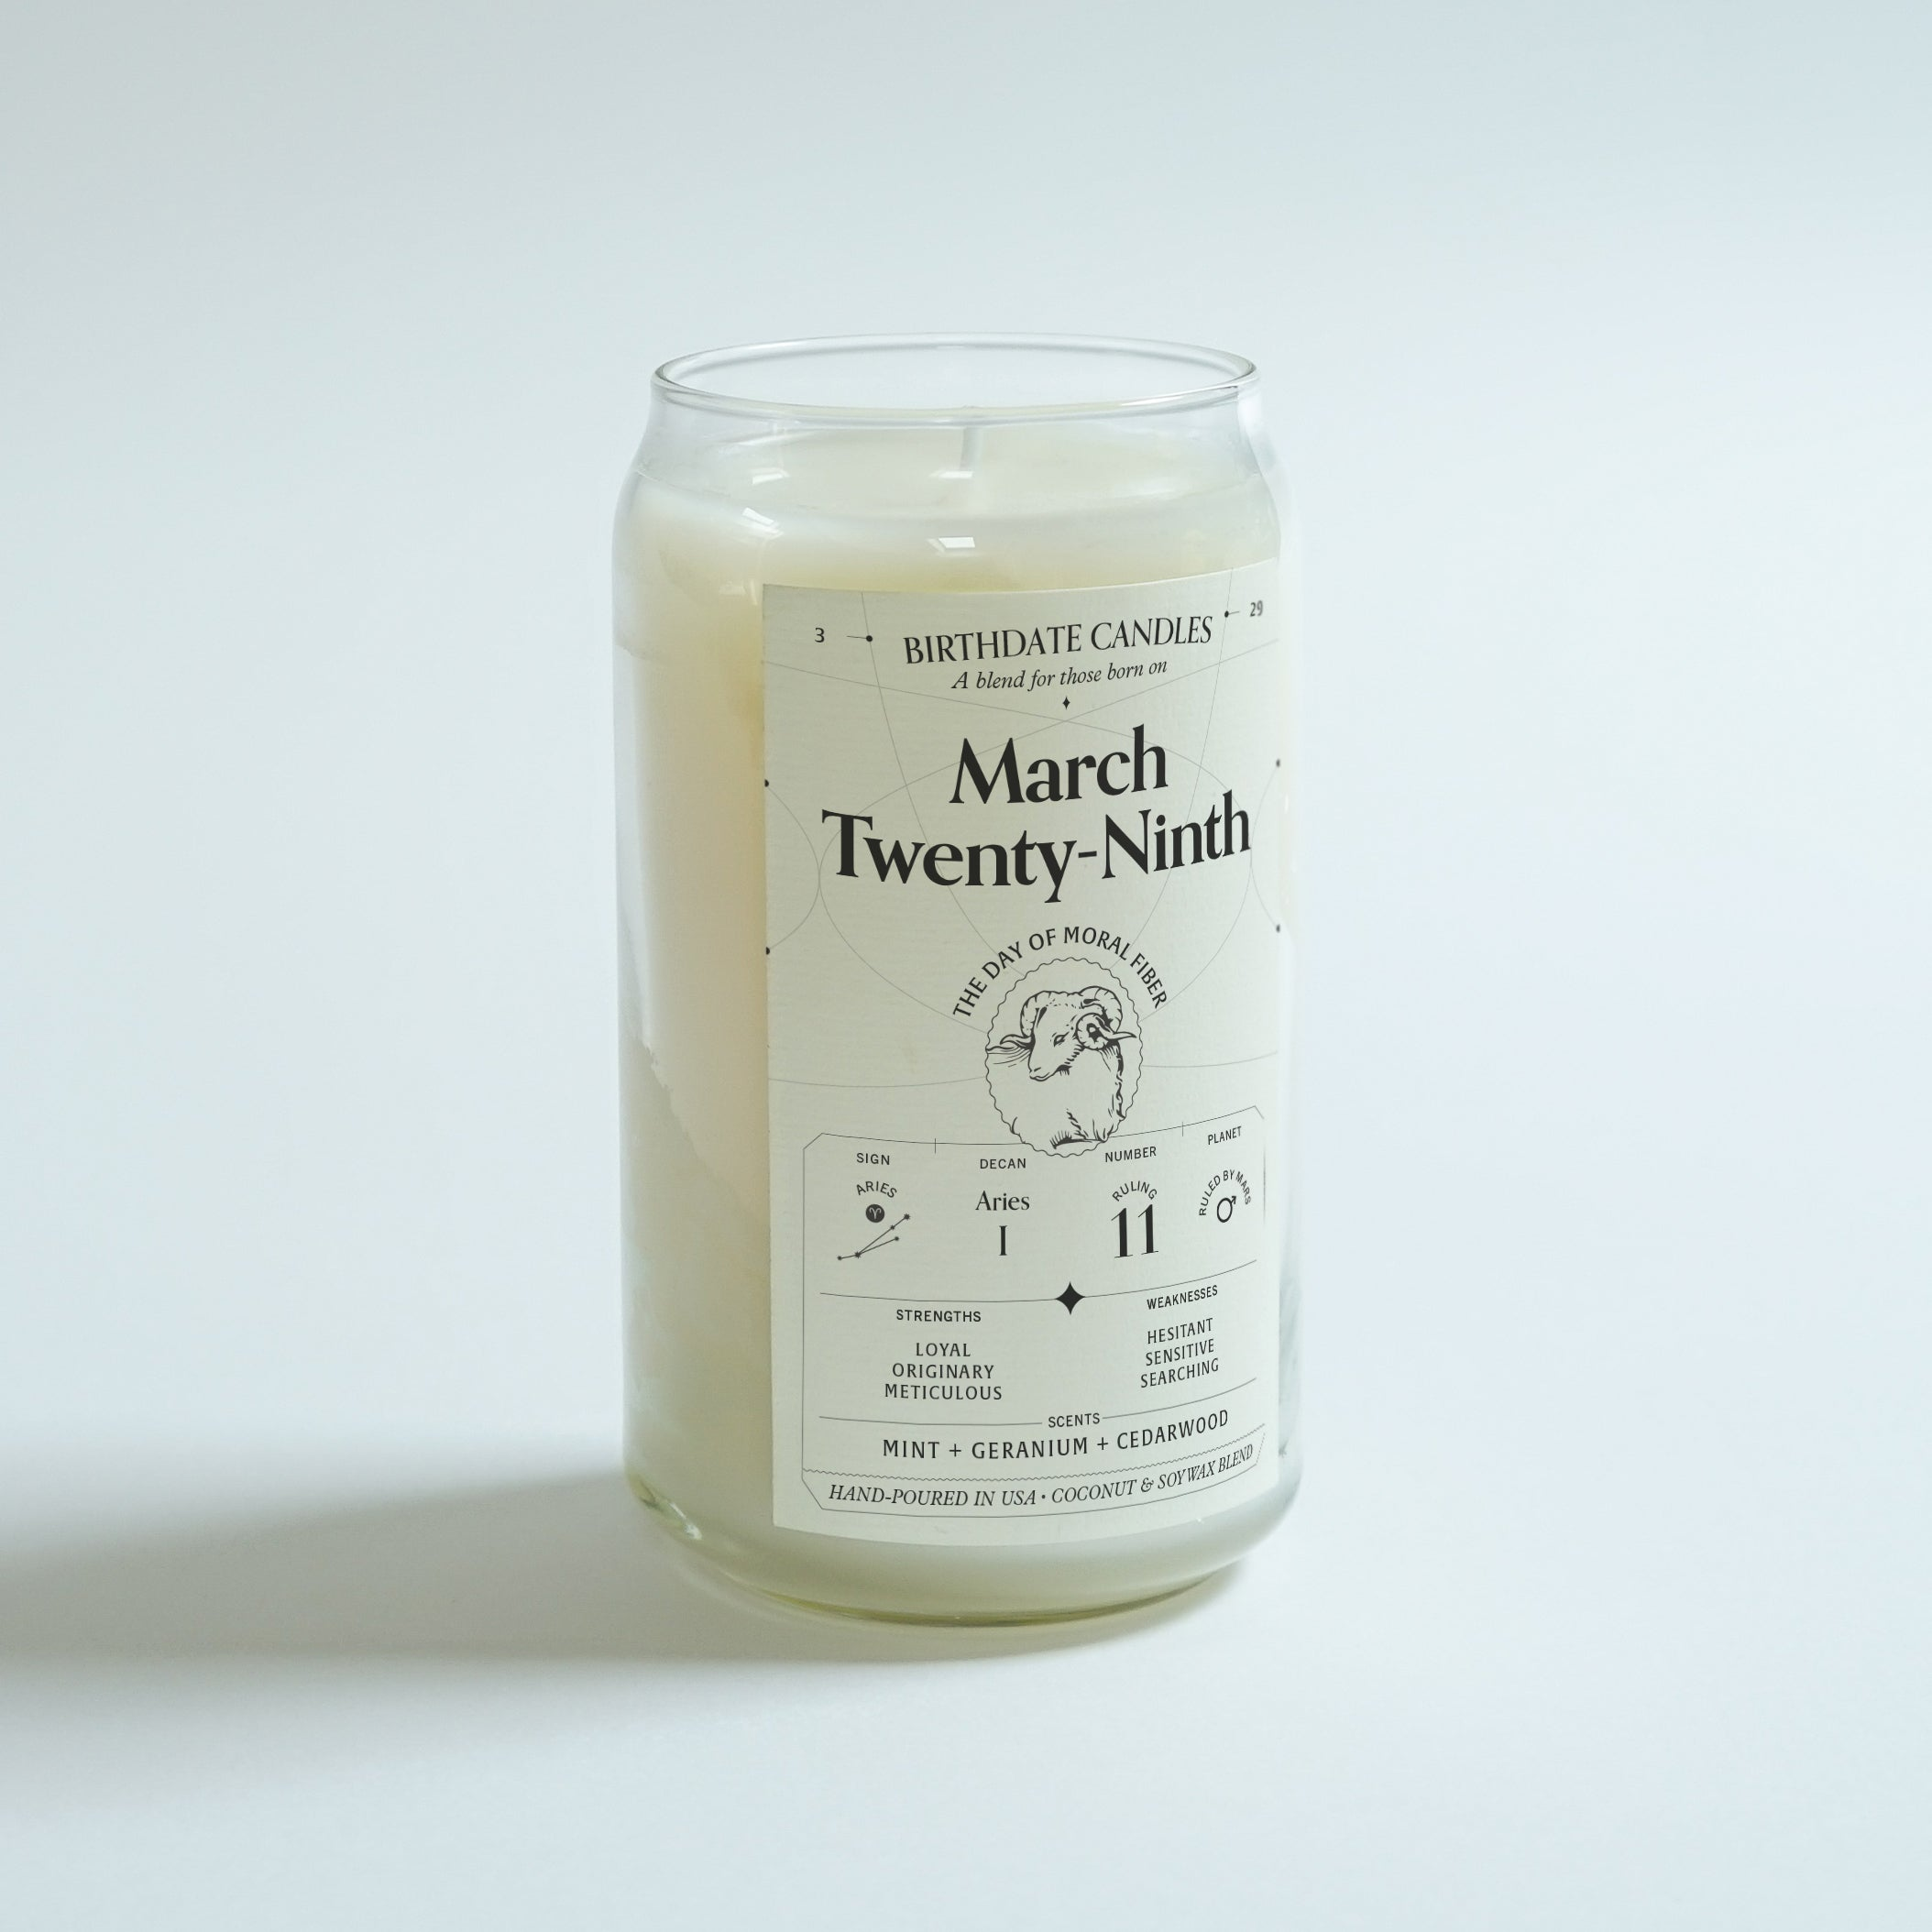 The March Twenty-Ninth Candle